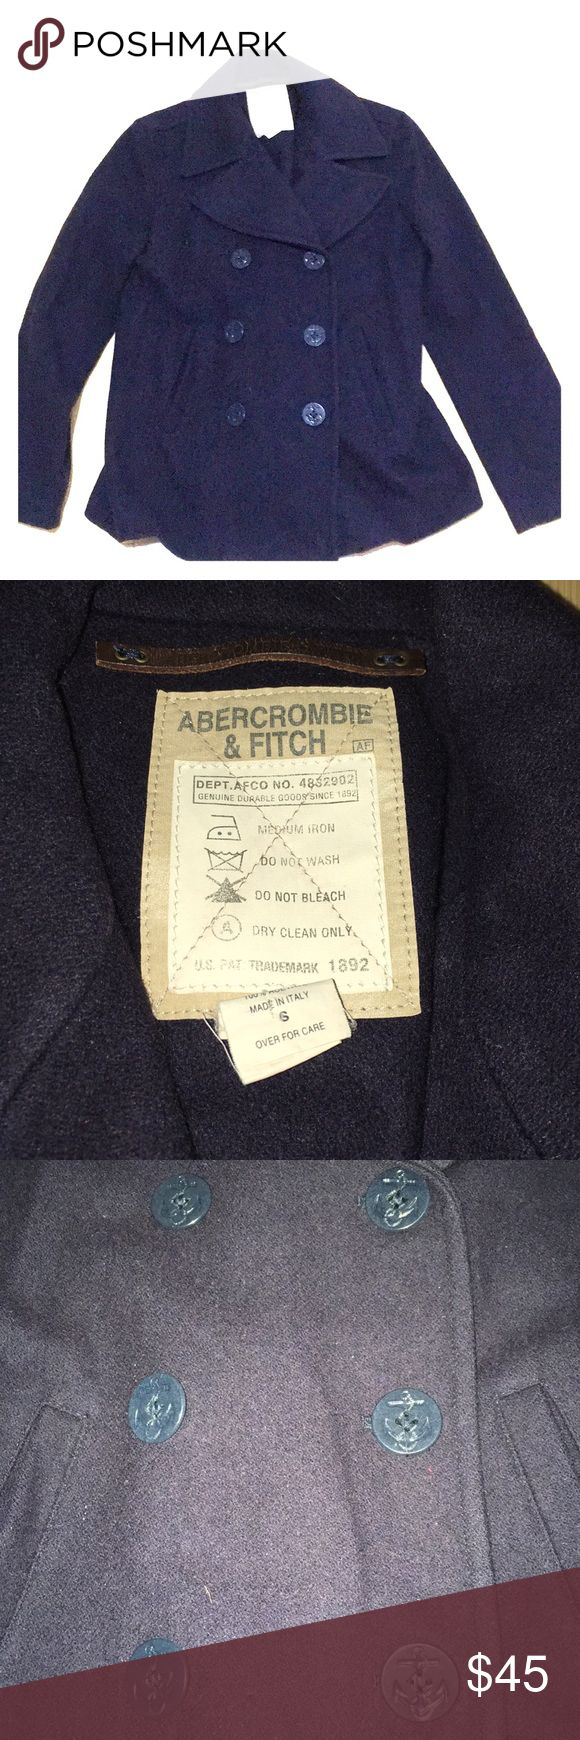 Abercrombie & Fitch Women's Peacoat Excellent condition. Buttons detail: anchors.  Comfortable and warm navy jacket. Lining is excellent. Abercrombie & Fitch Jackets & Coats Pea Coats